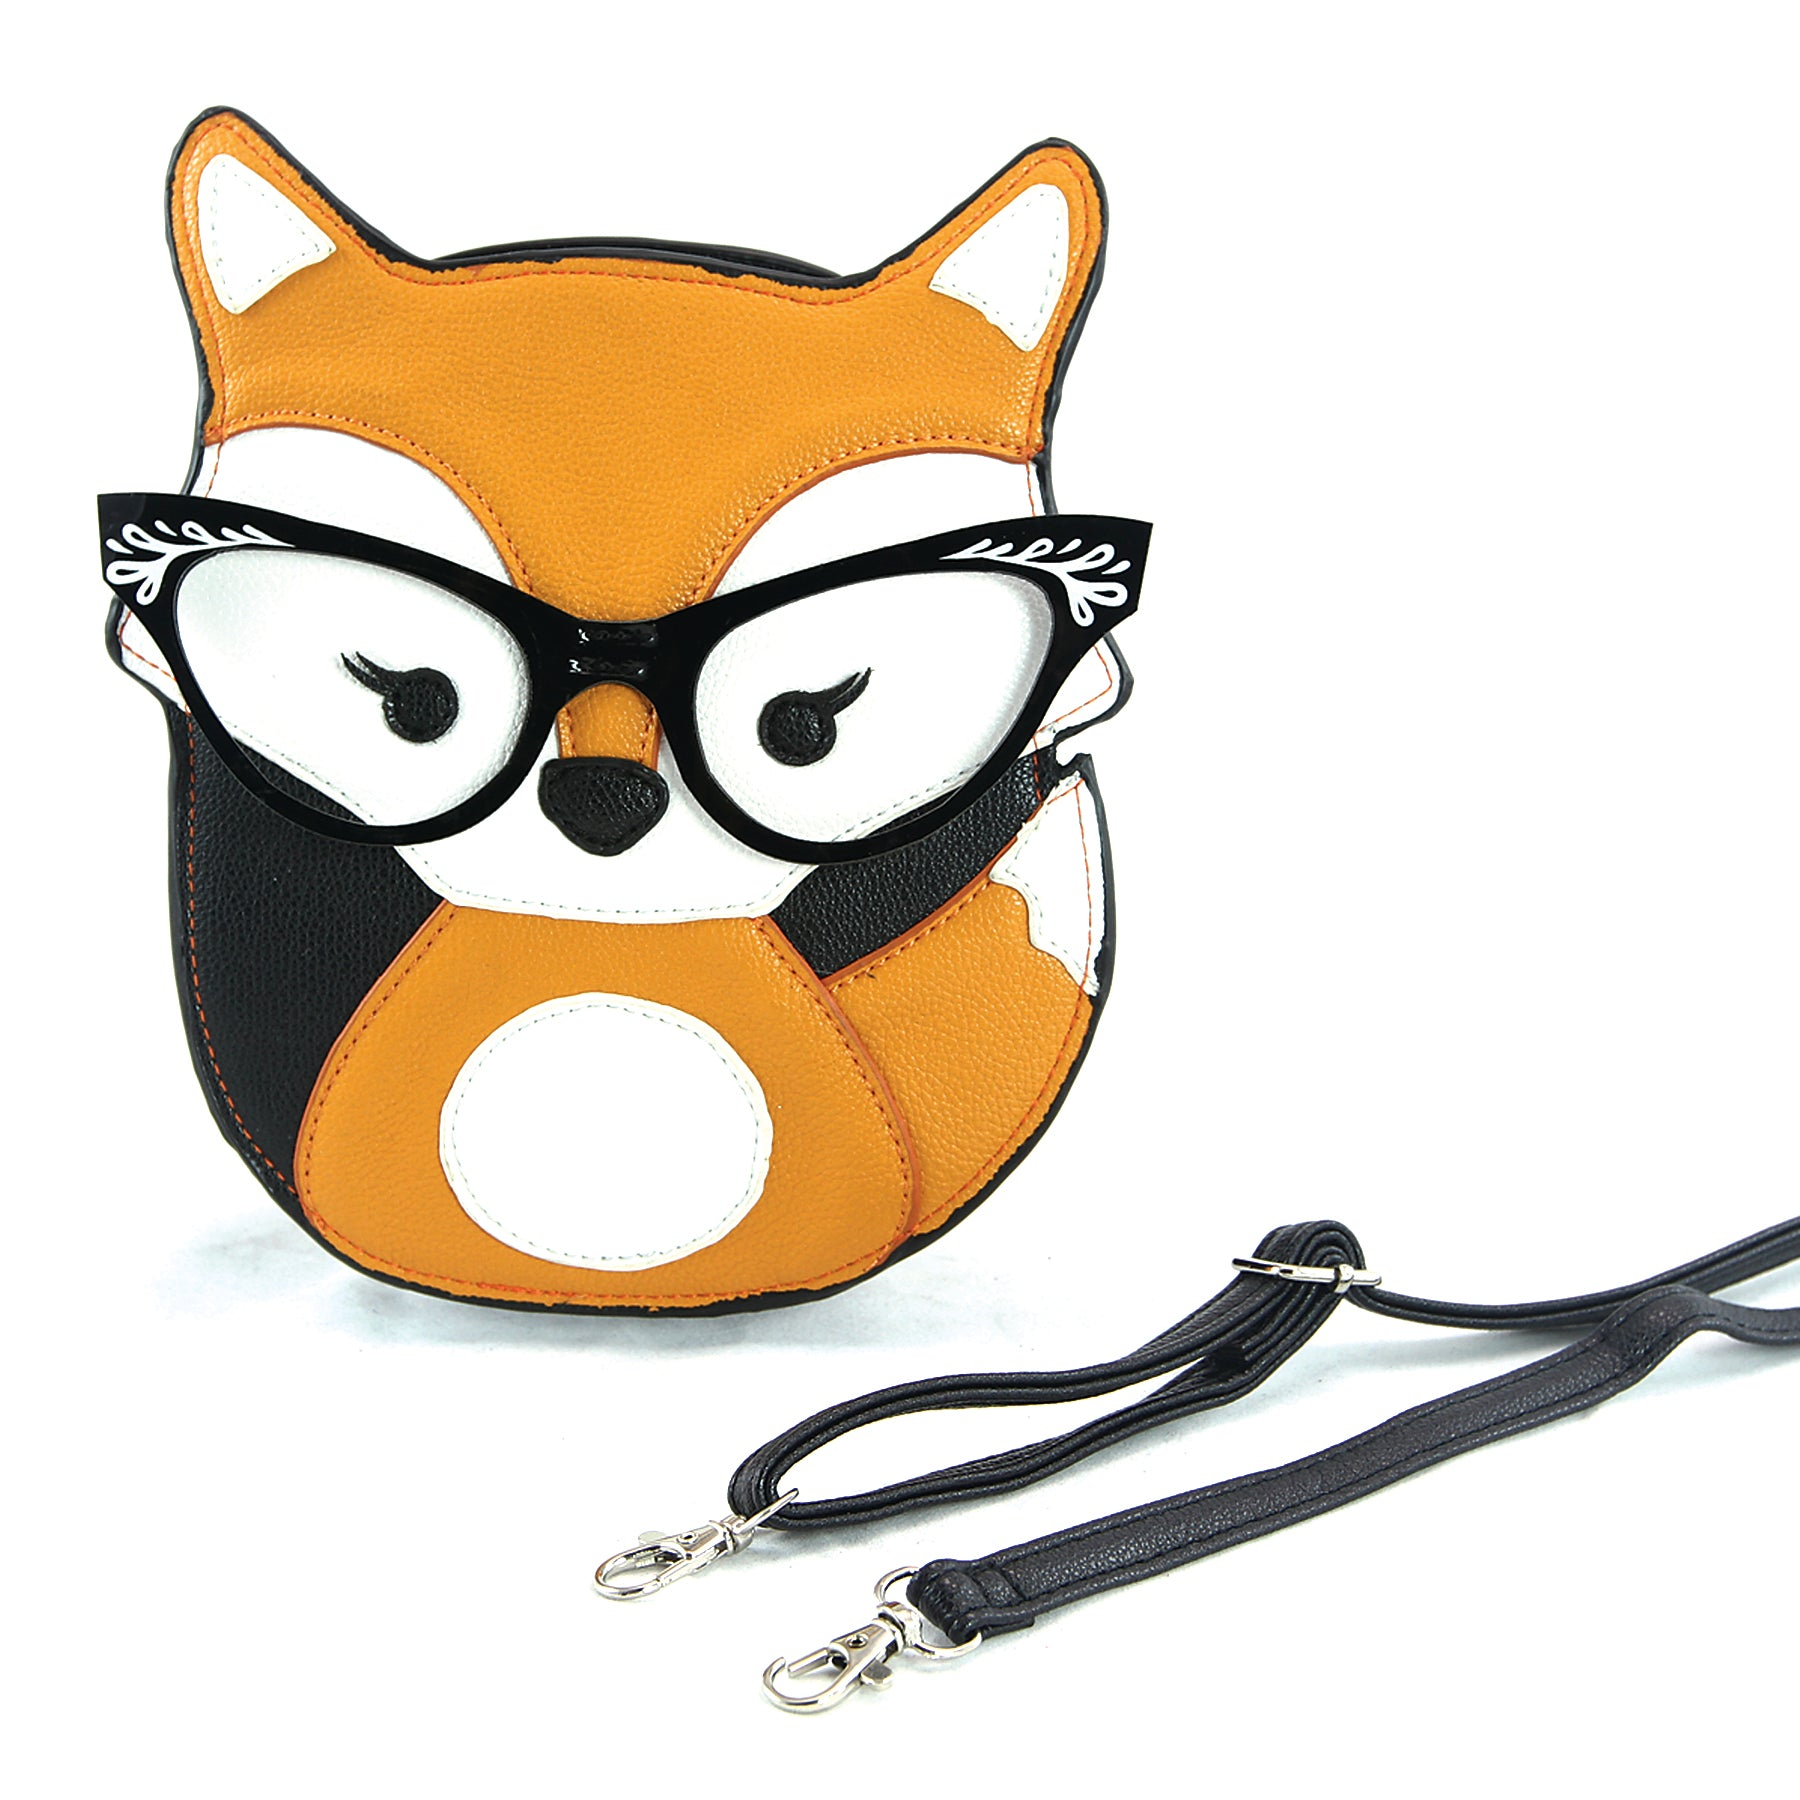 Sleepyville Critters - Foxy Fox with Vintage Eyewear Crossbody Bag, front view